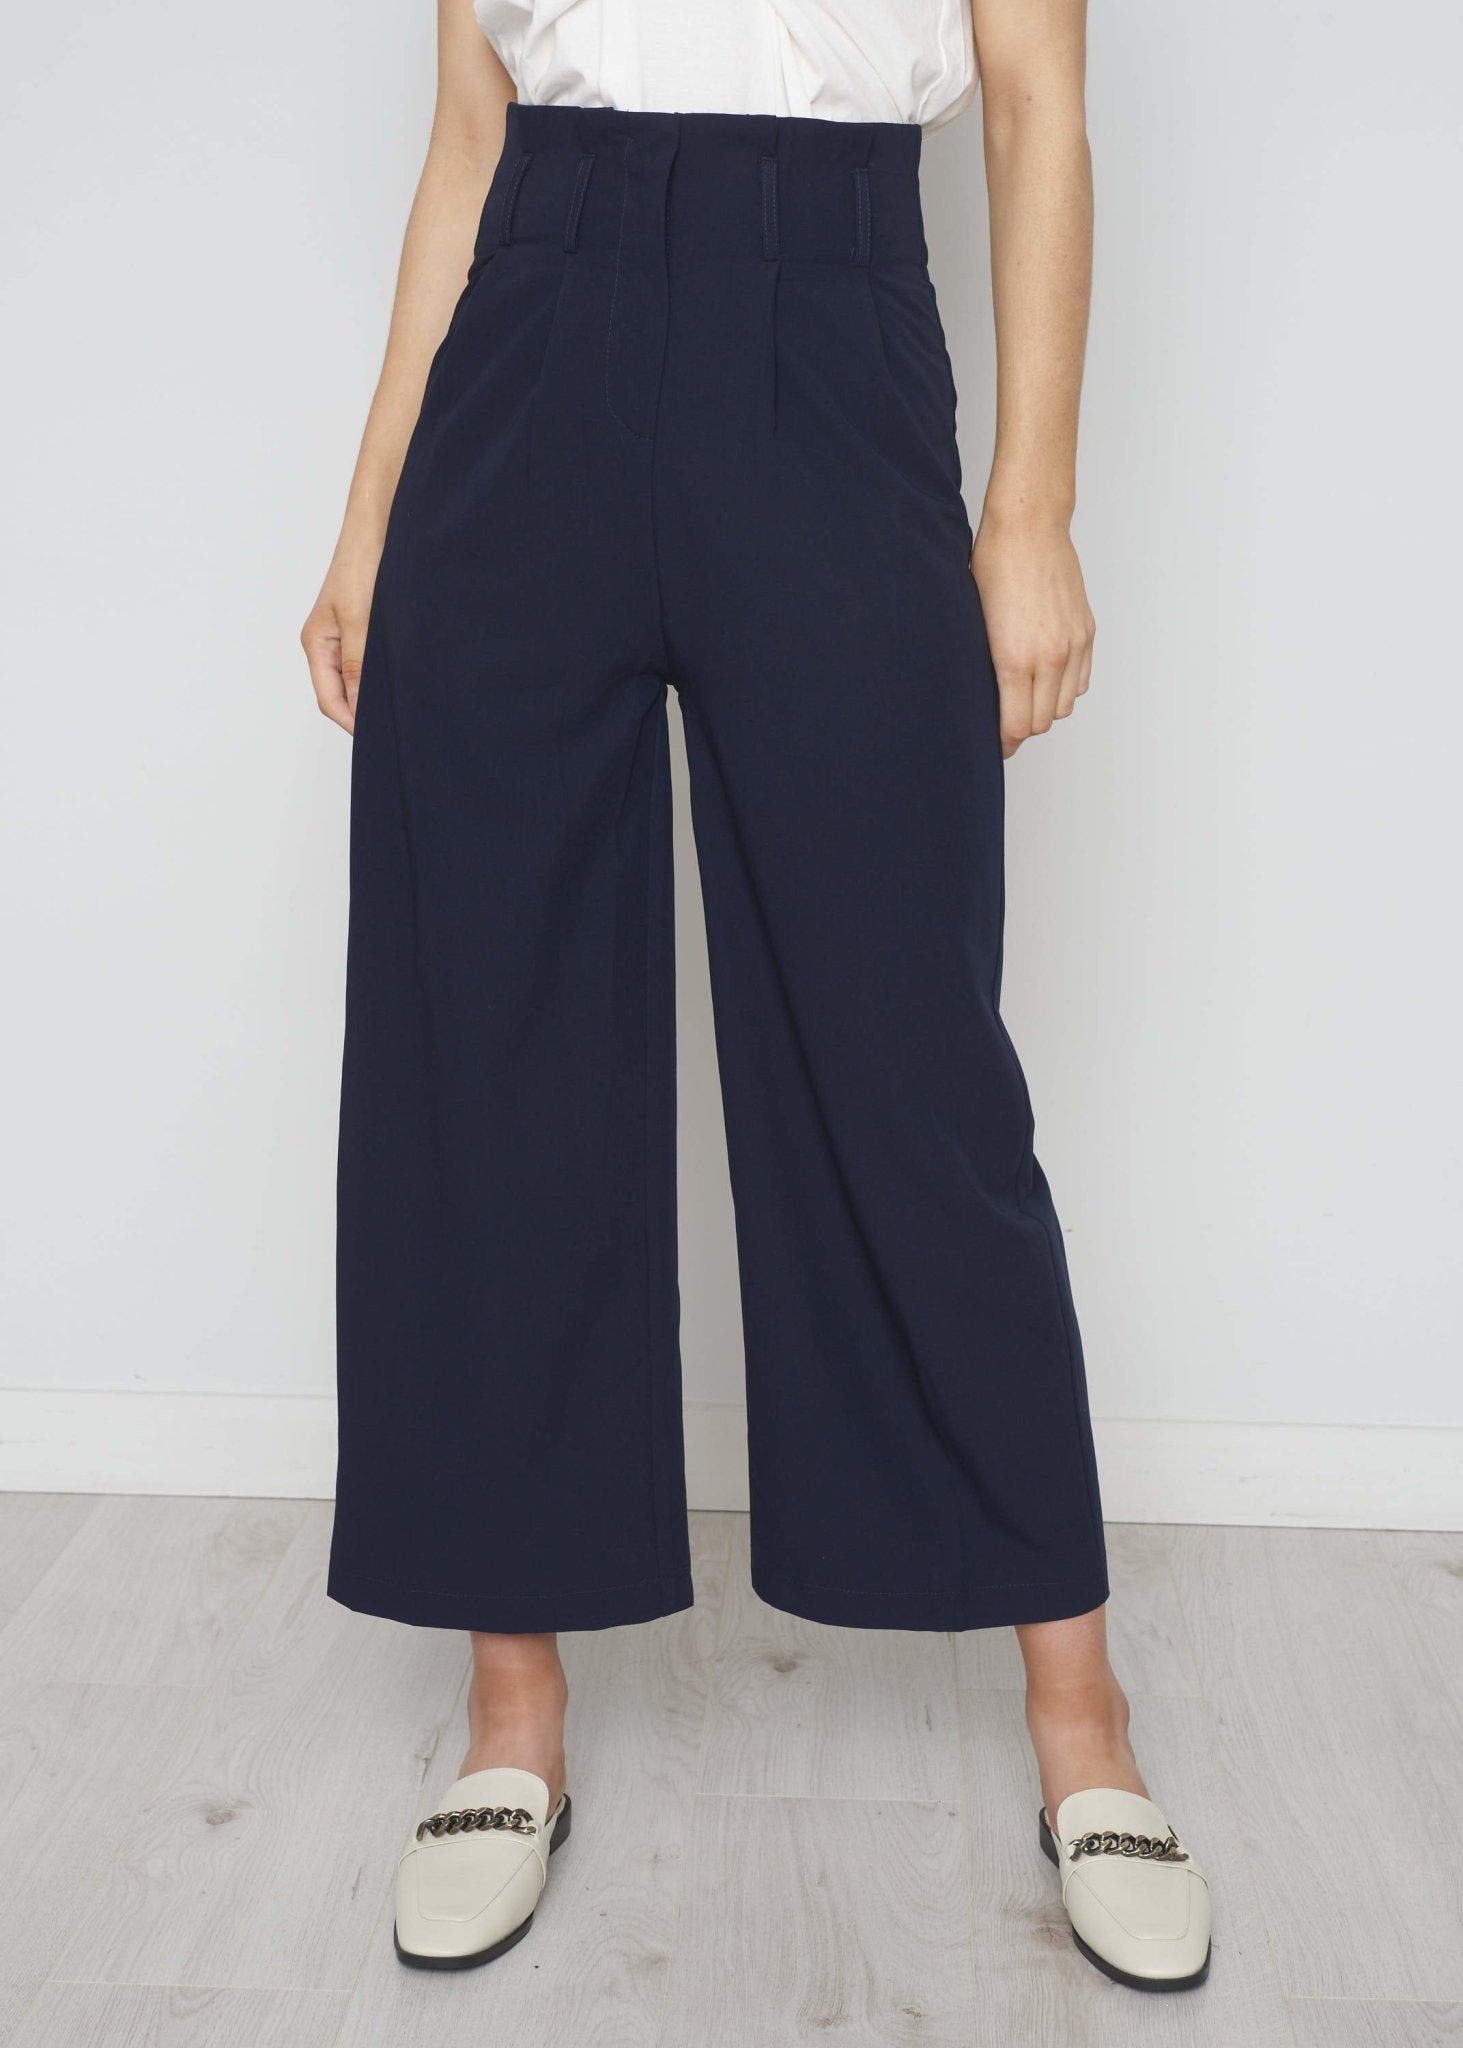 Becca Wide Leg Trouser In Navy - The Walk in Wardrobe